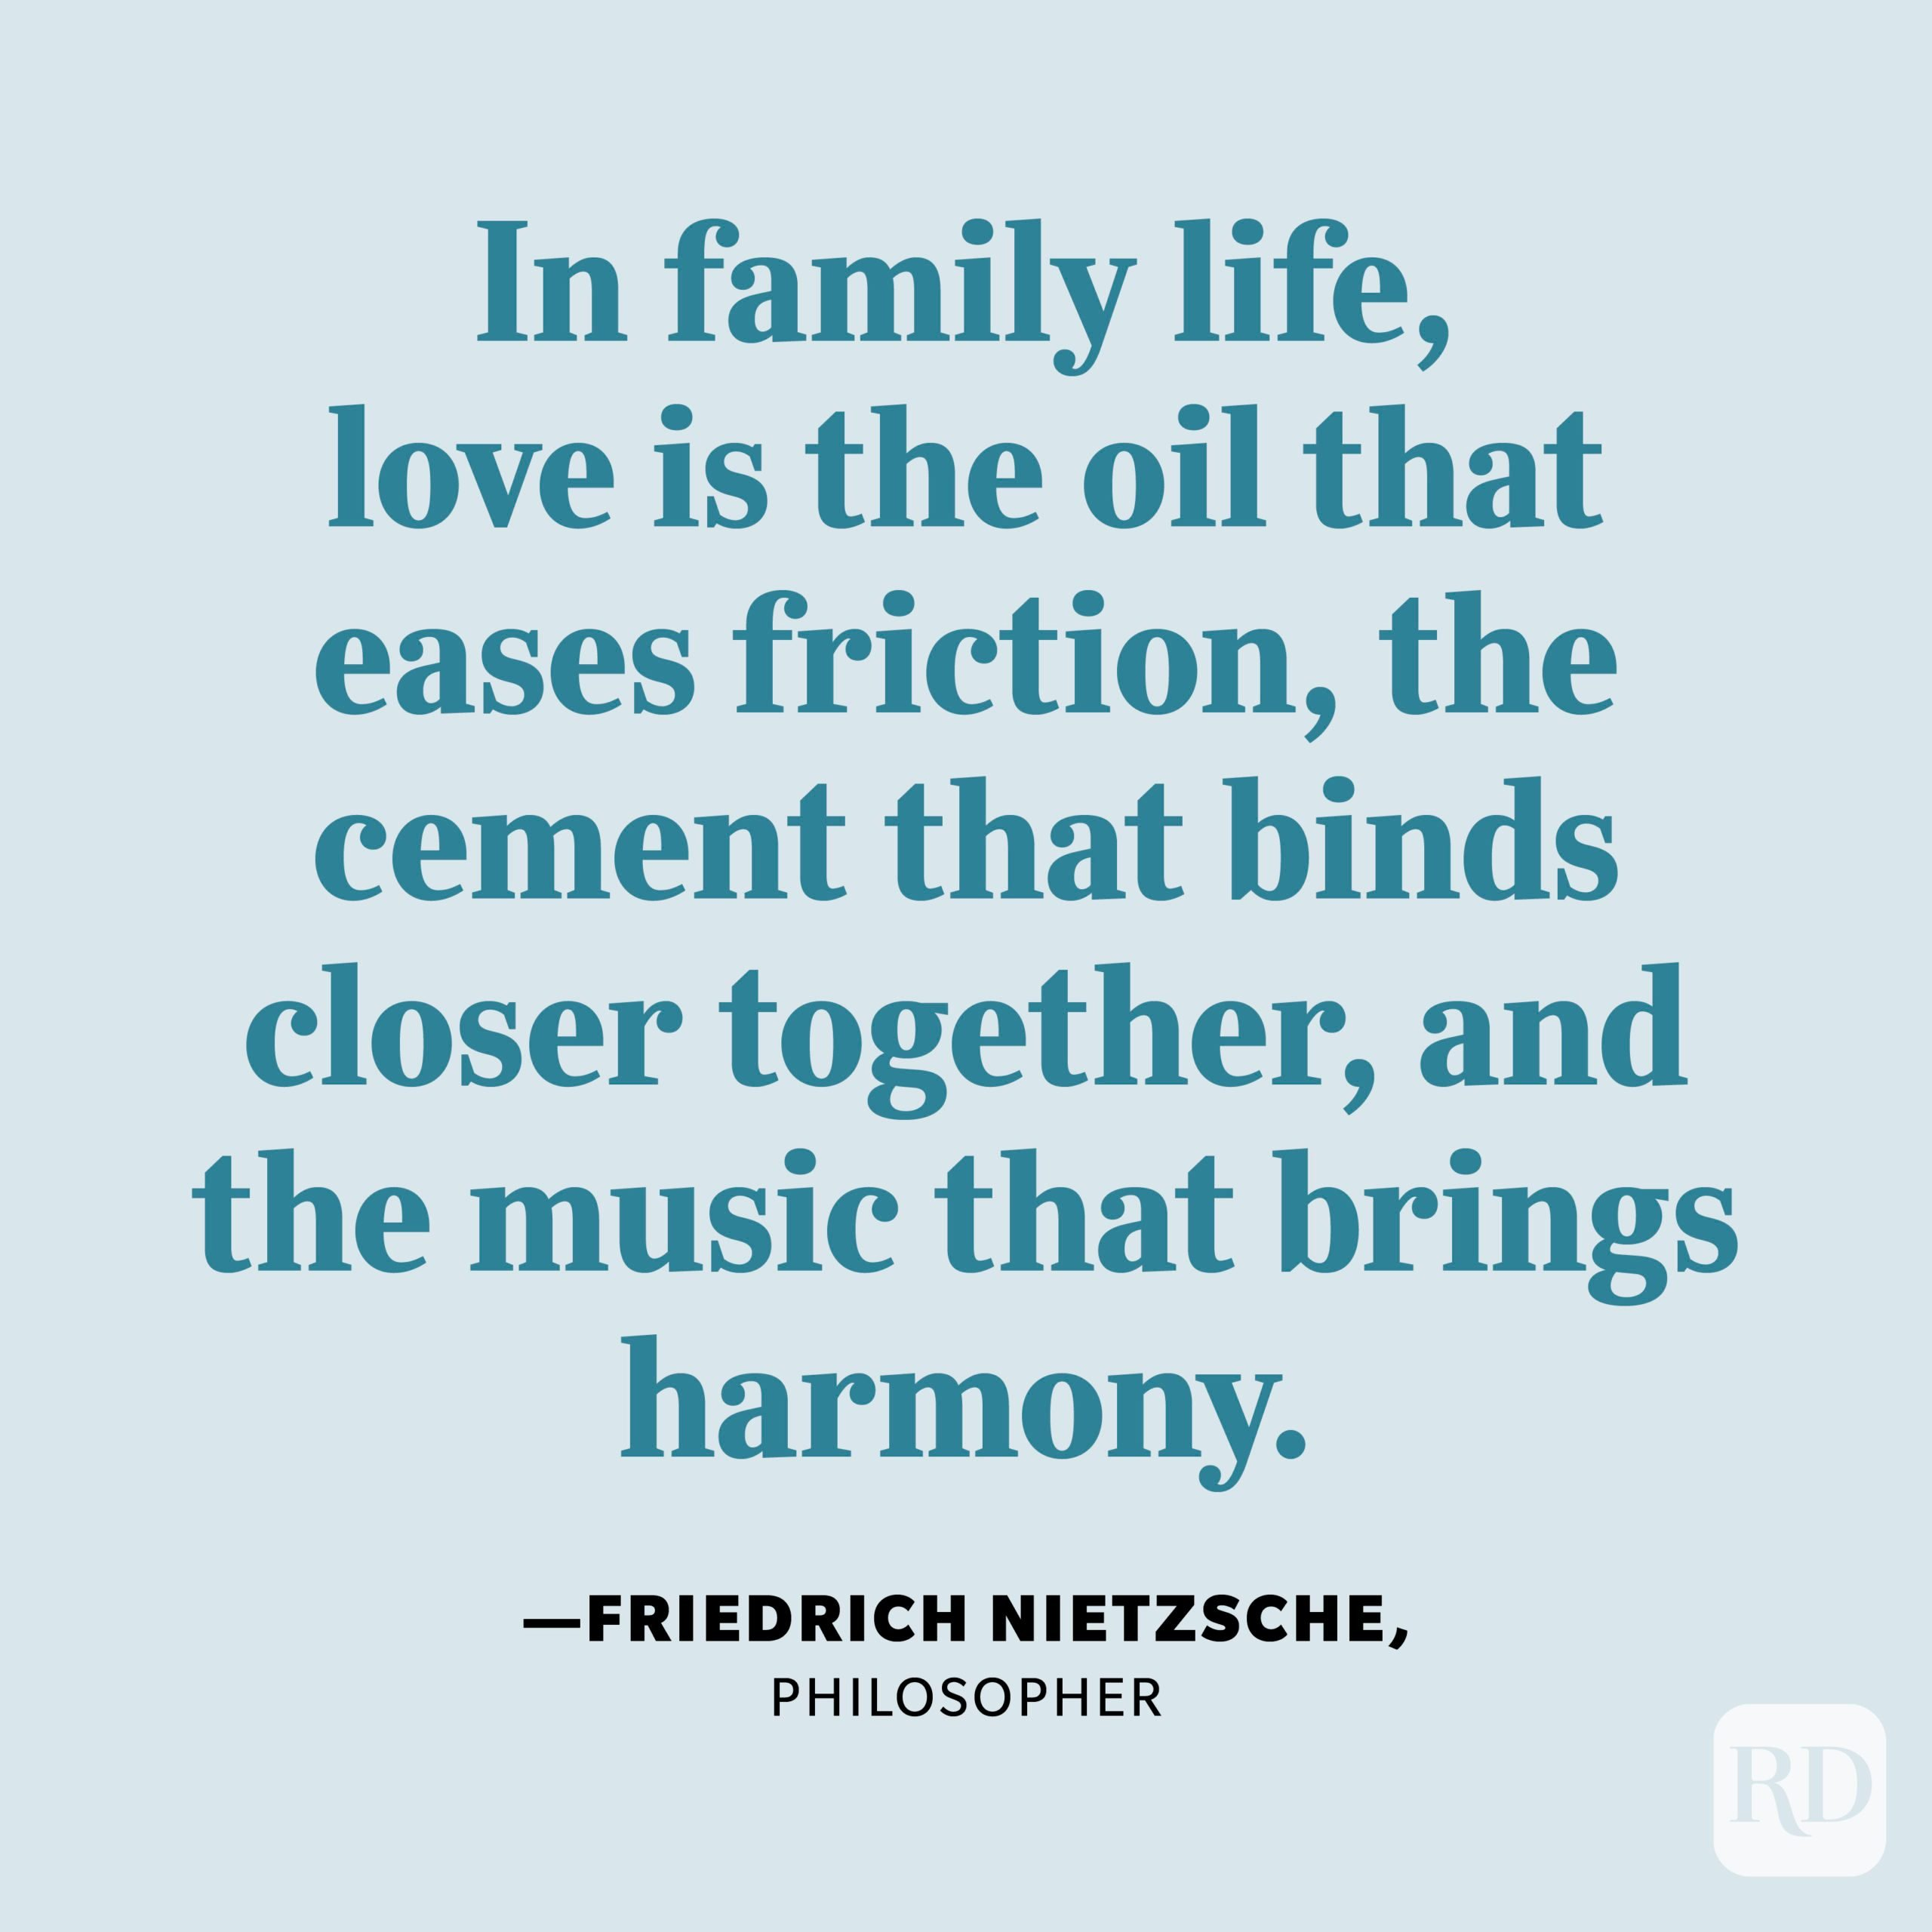 """""""In family life, love is the oil that eases friction, the cement that binds closer together, and the music that brings harmony."""" —Friedrich Nietzsche, philosopher"""